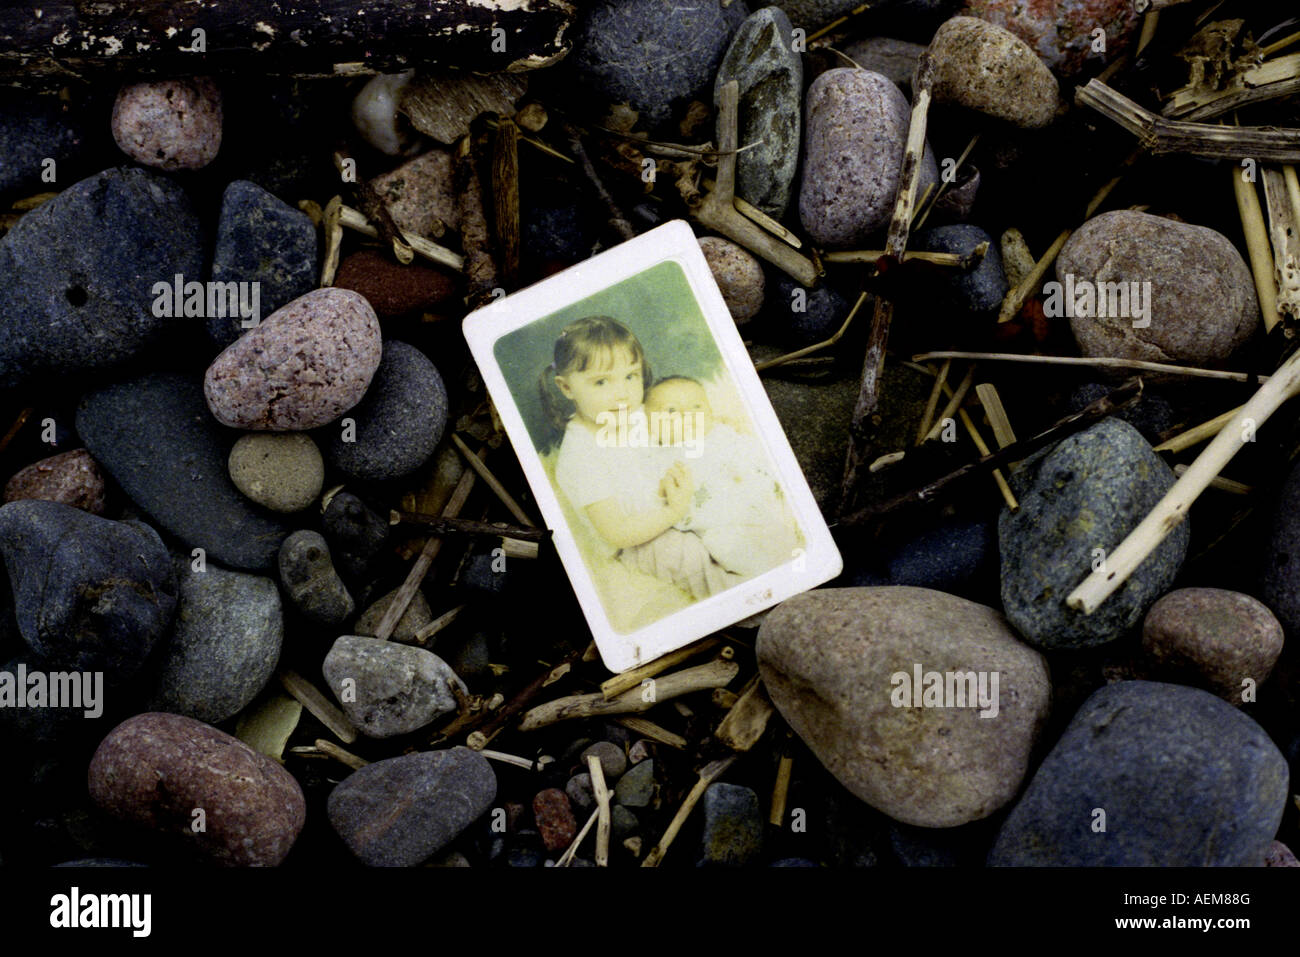 A family portrait lies washed up on a rocky beach. - Stock Image